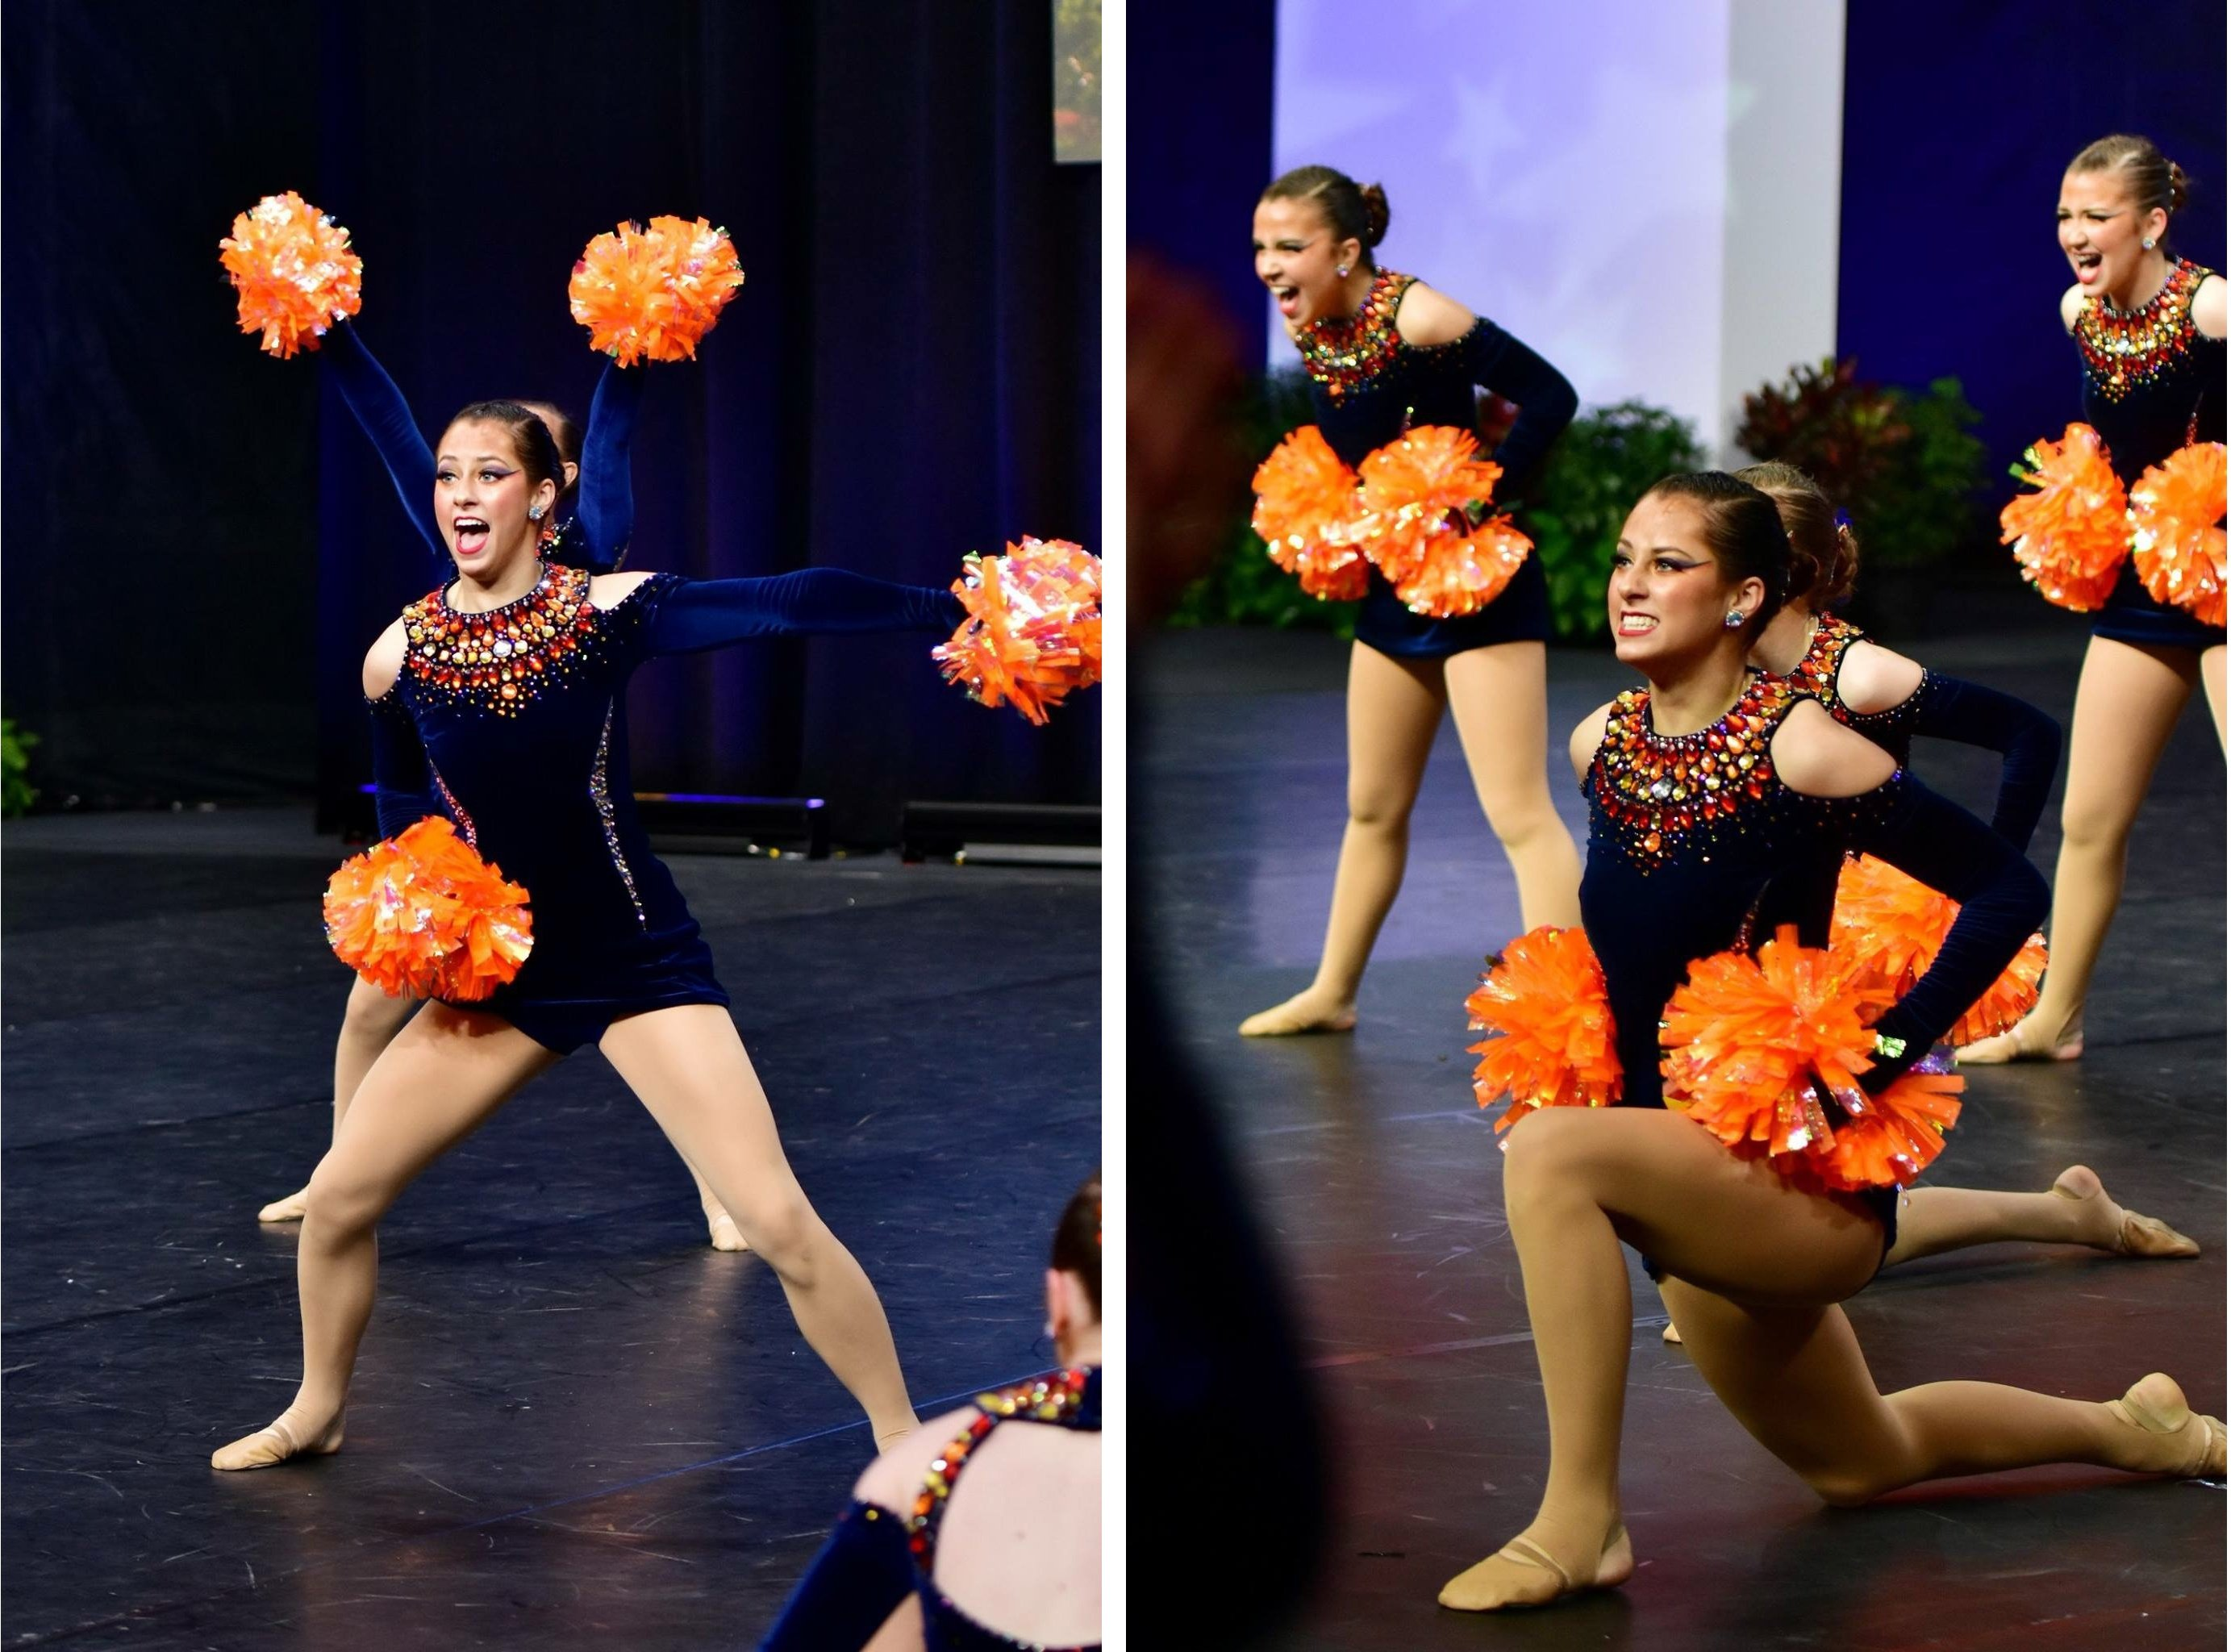 seton dance team custom dance costumes at UDA NDTC  sc 1 st  The Line Up Blog & Team Spotlight: NDTC National Champions Seton Dance Team!